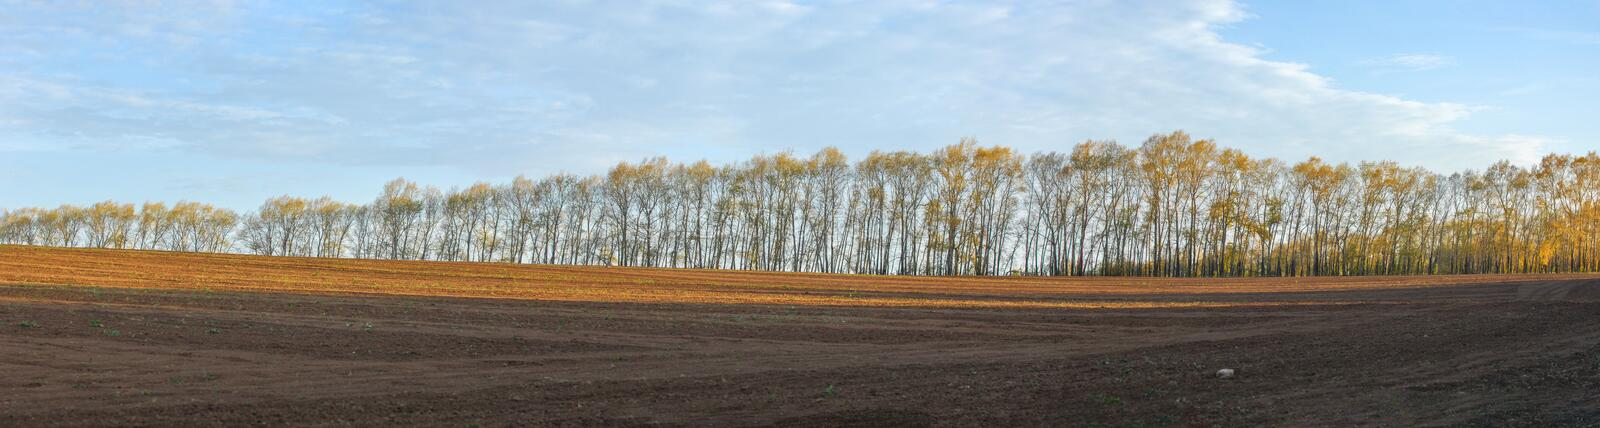 Picture 3032 by 11,300 pixels. Poplars in autumn. Alley of trees royalty free stock image